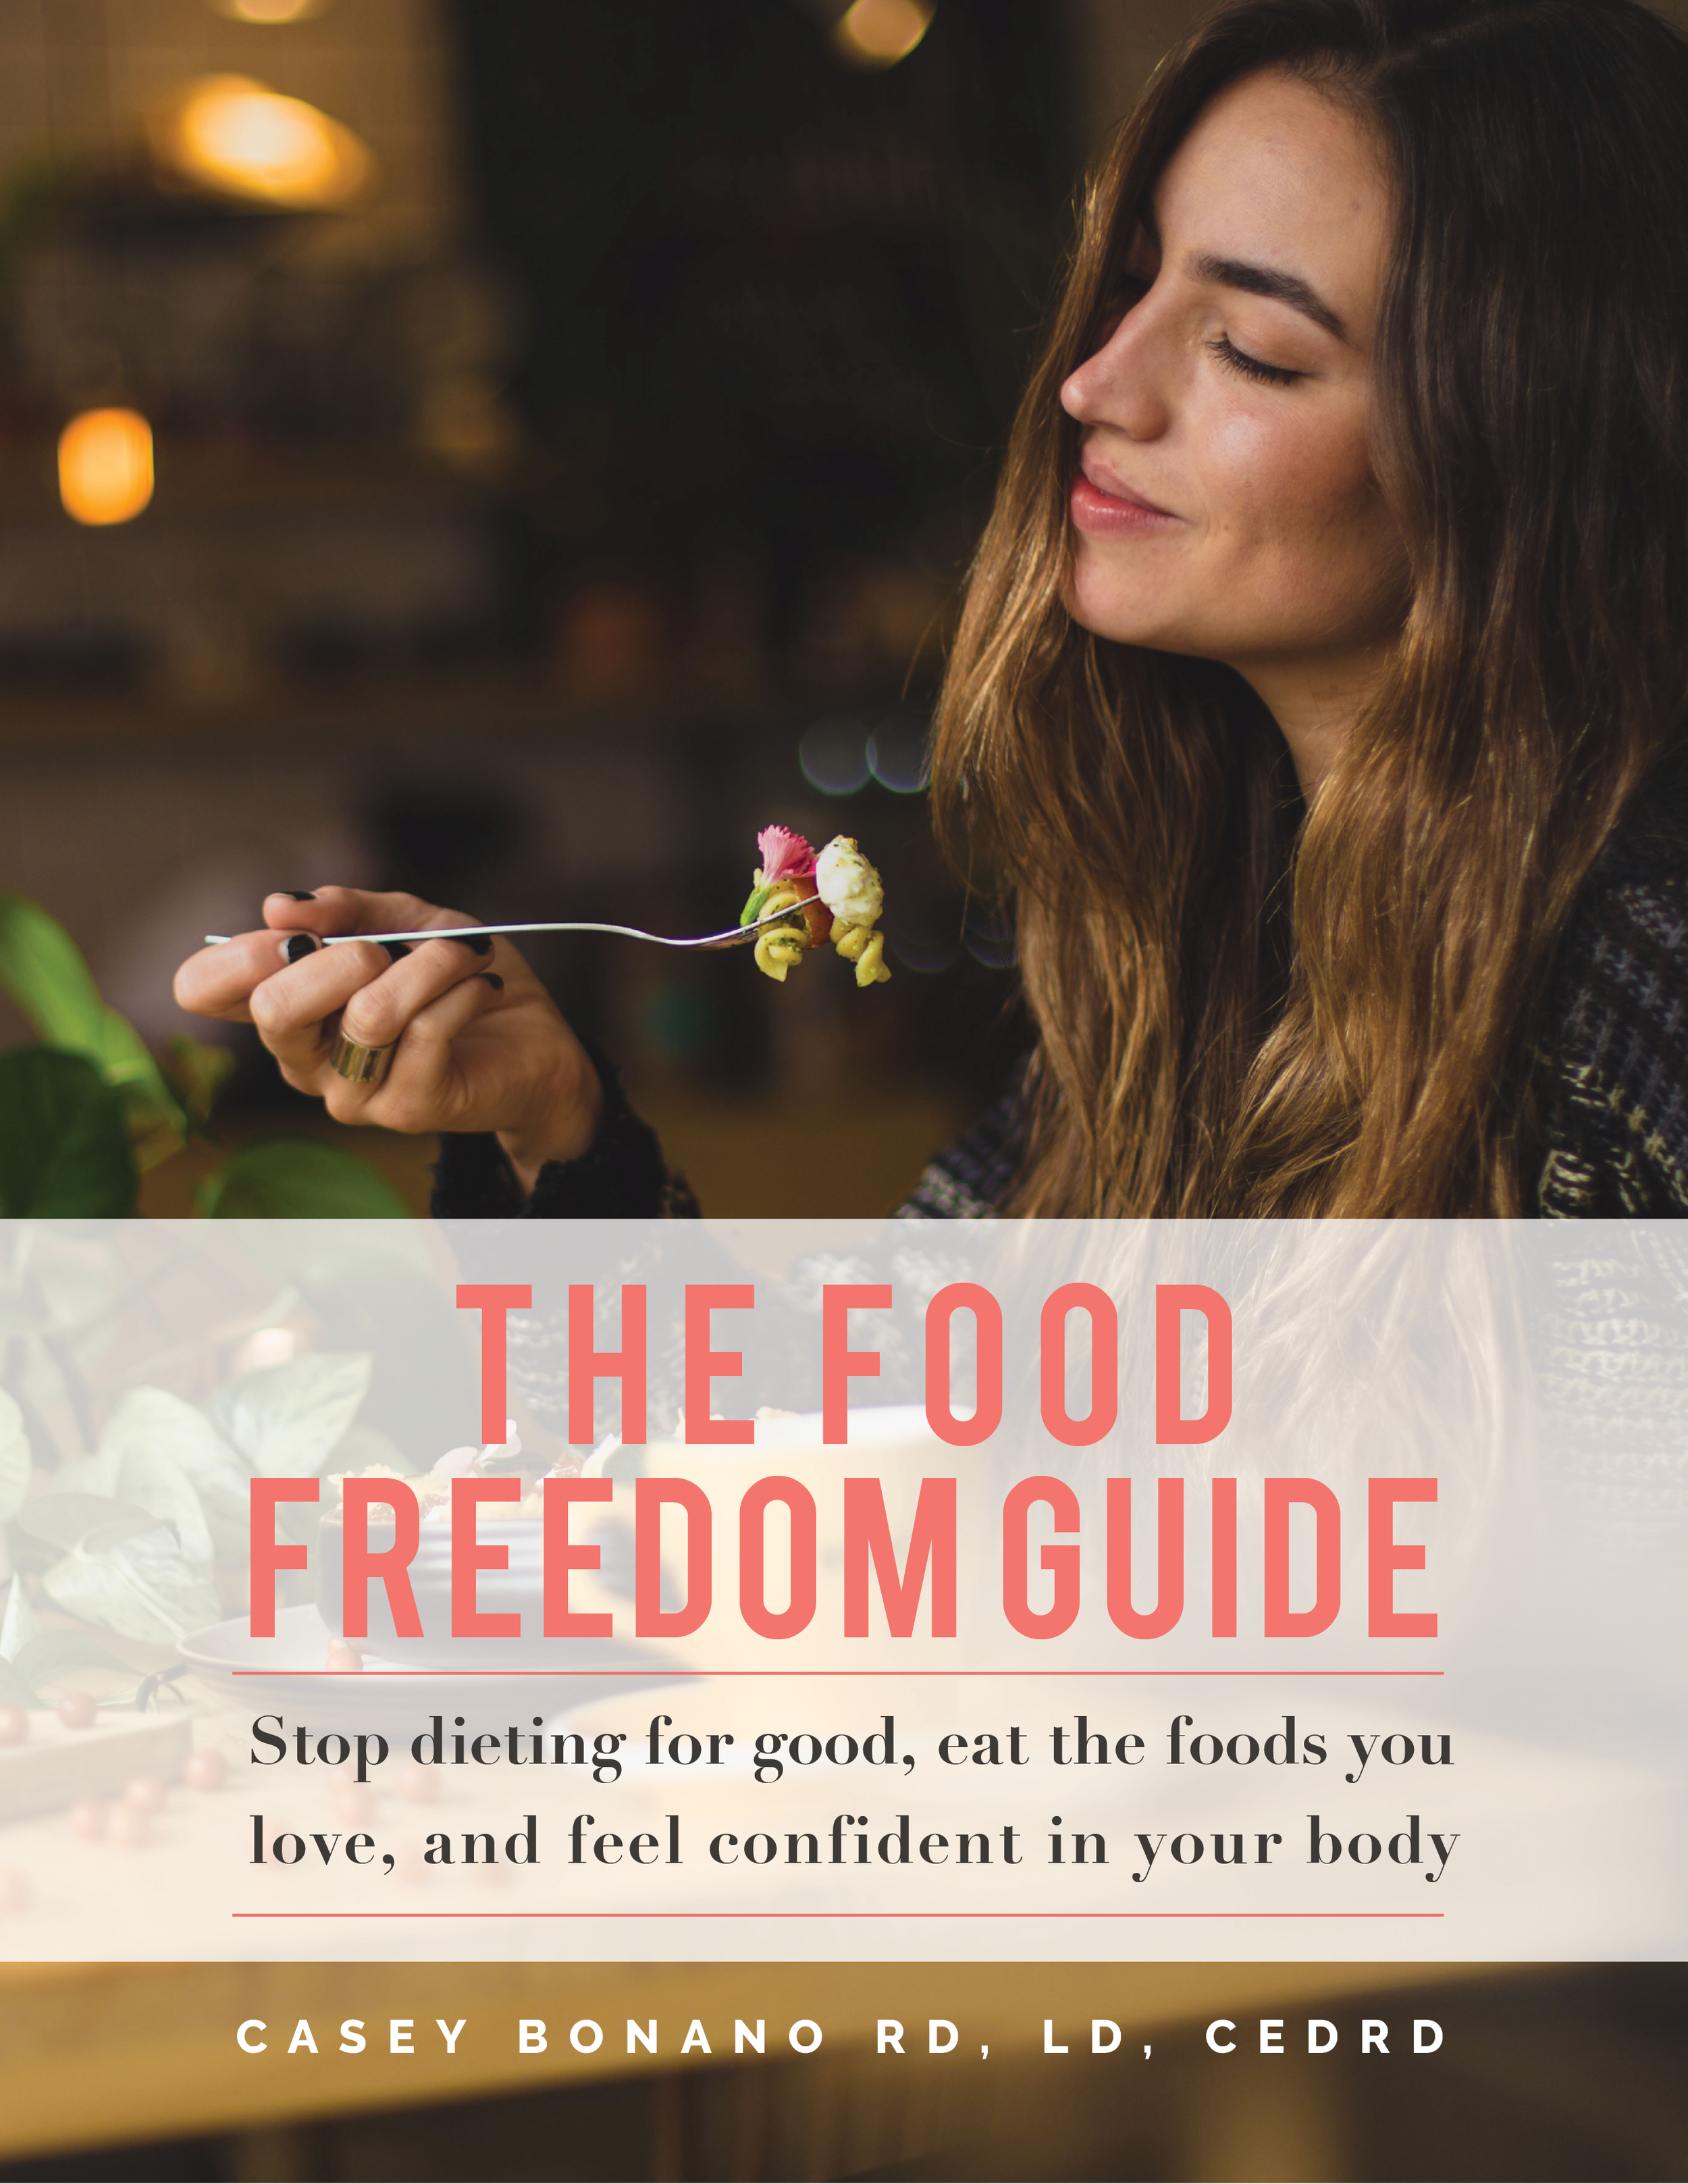 Are you tired of dieting, feeling hungry, and hating the way you look? My new ebook, The Food Freedom Guide, walks you through letting go of diet culture, normalizing your eating, and improving your body image. Click to get more details and purchase your copy.